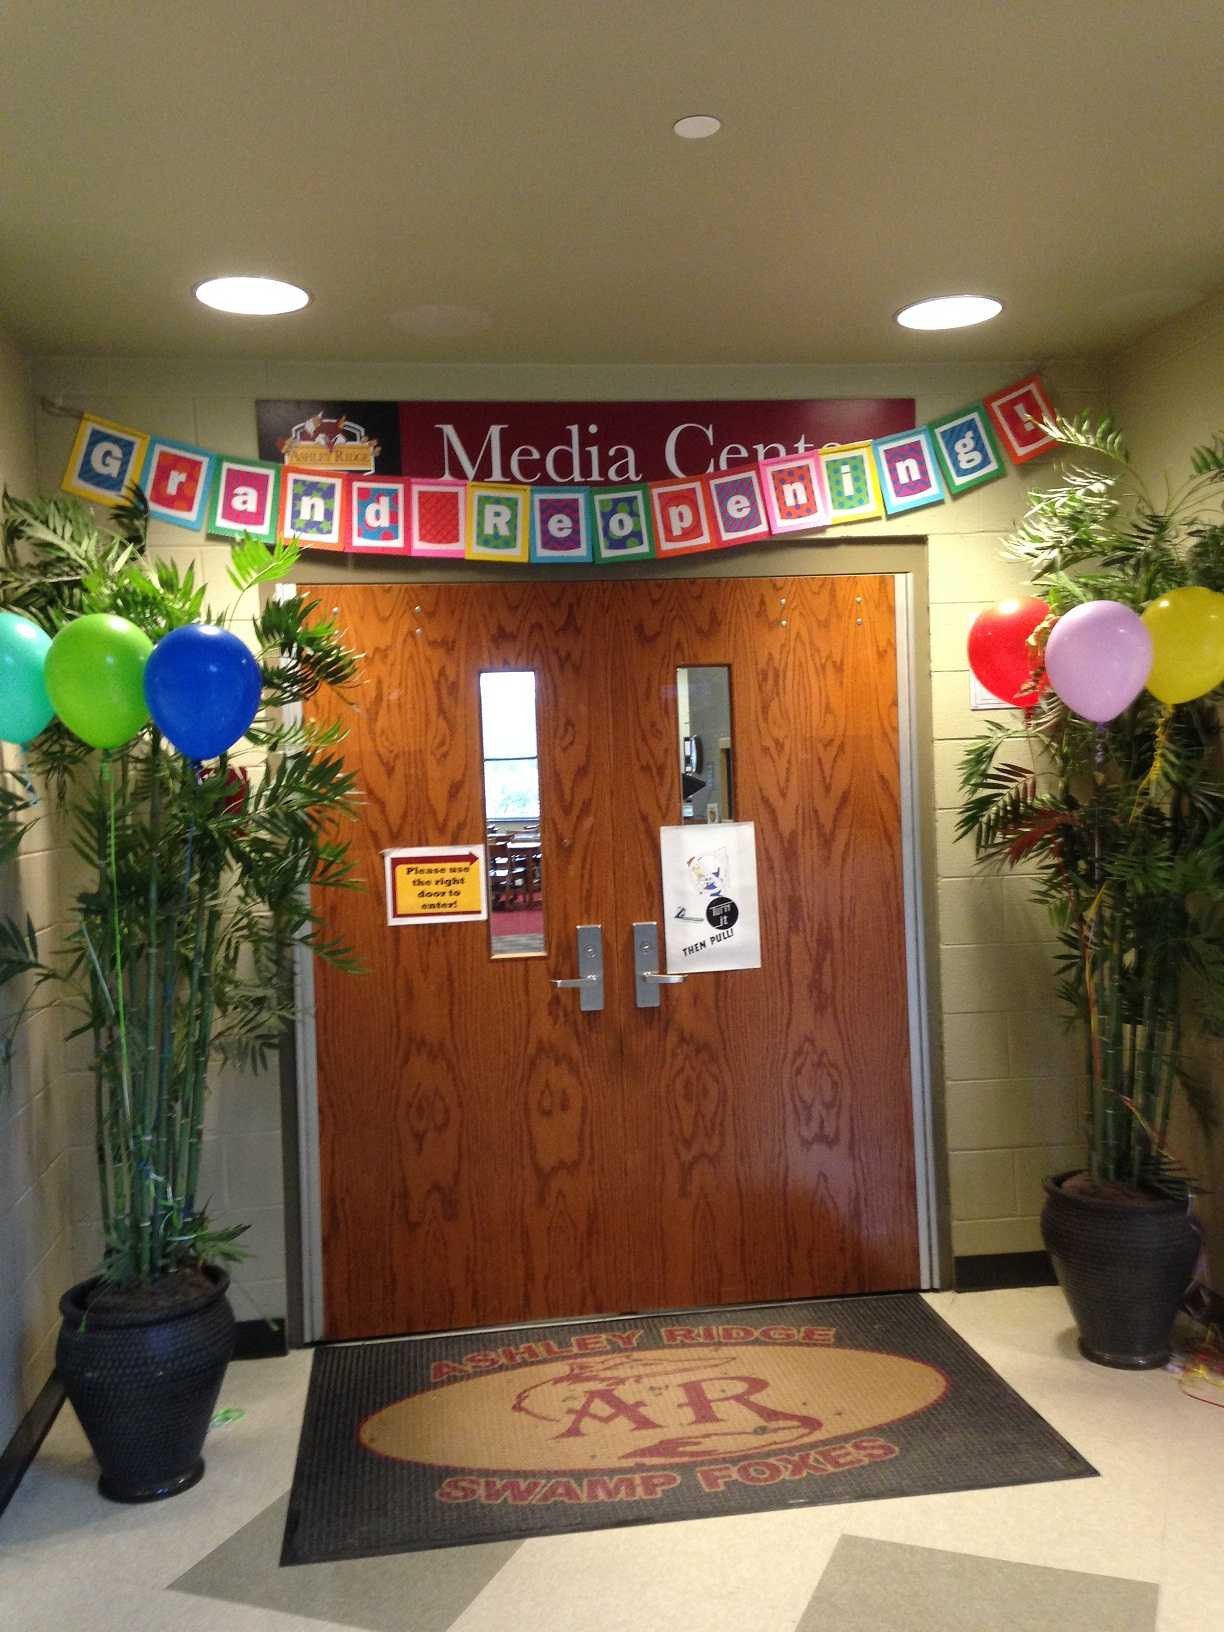 October 1, 2015 The grand reopening of ARHS media center.